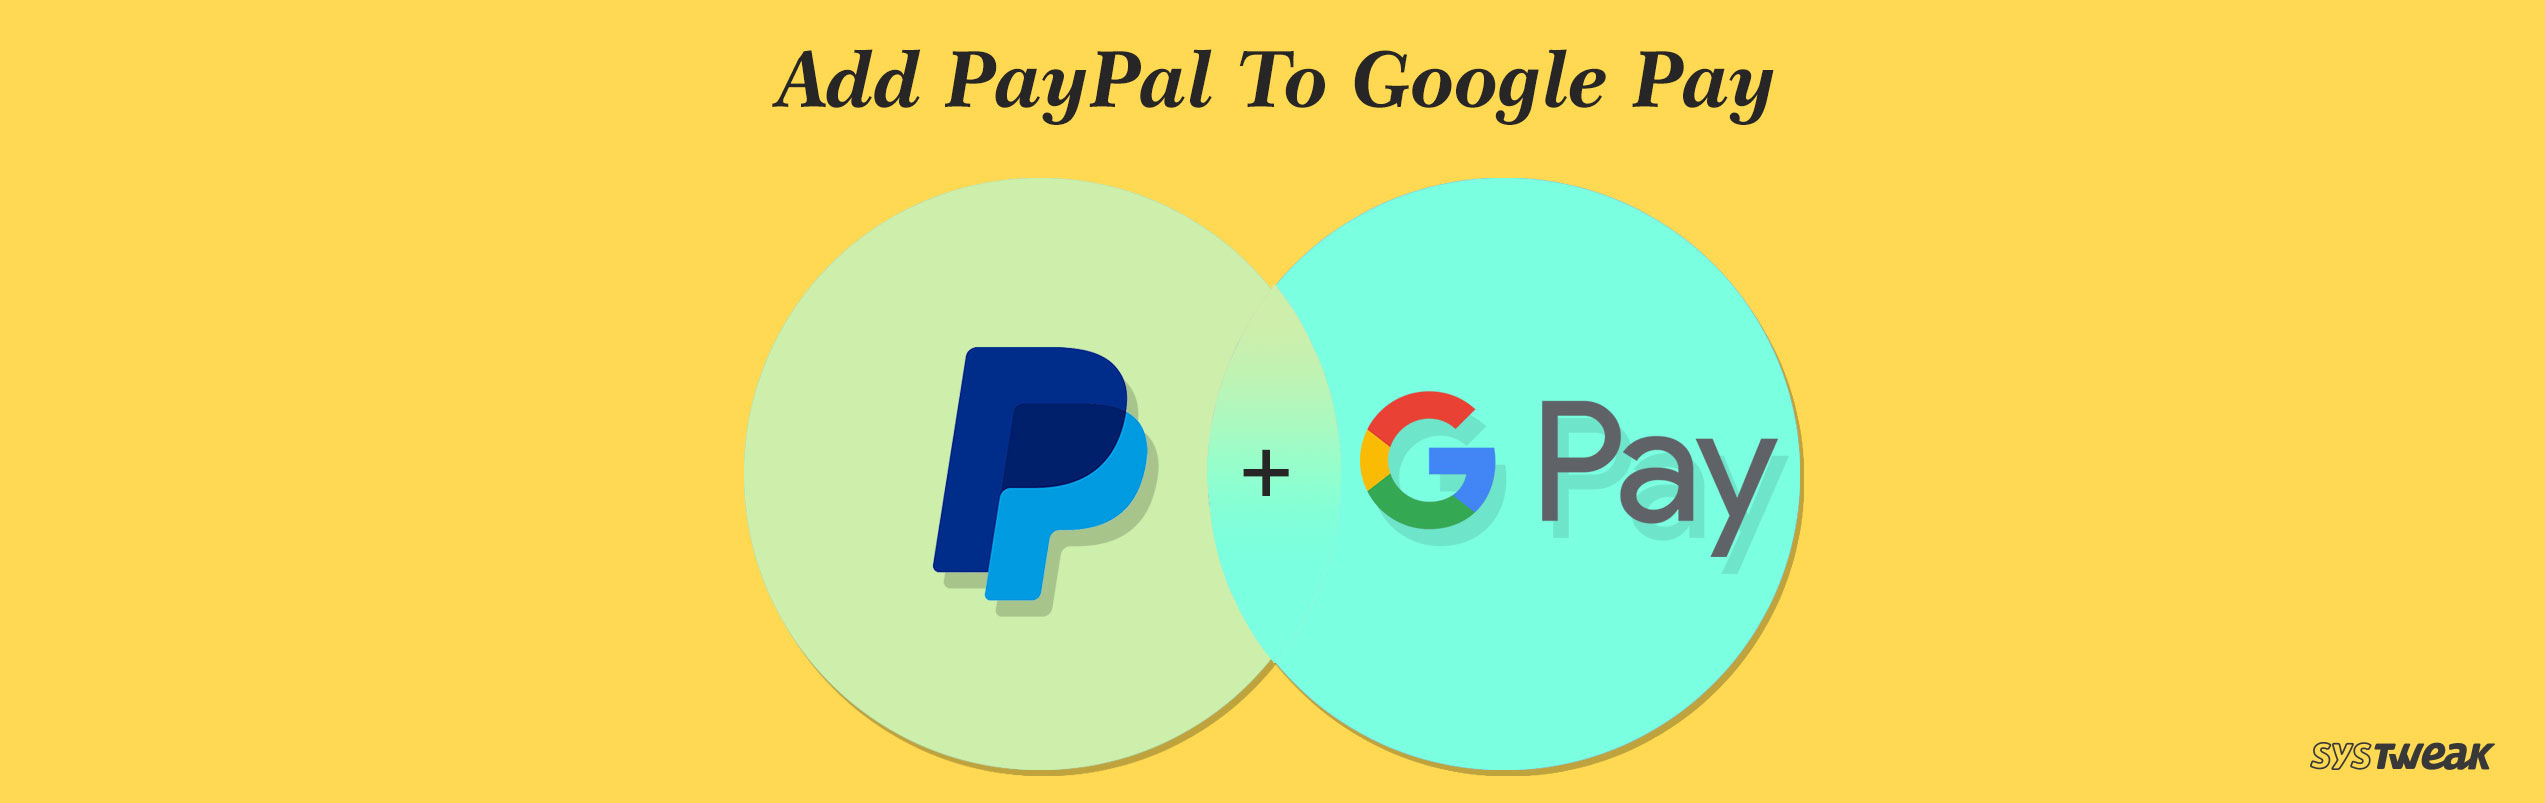 How To Add PayPal As A Payment Method To Google Pay